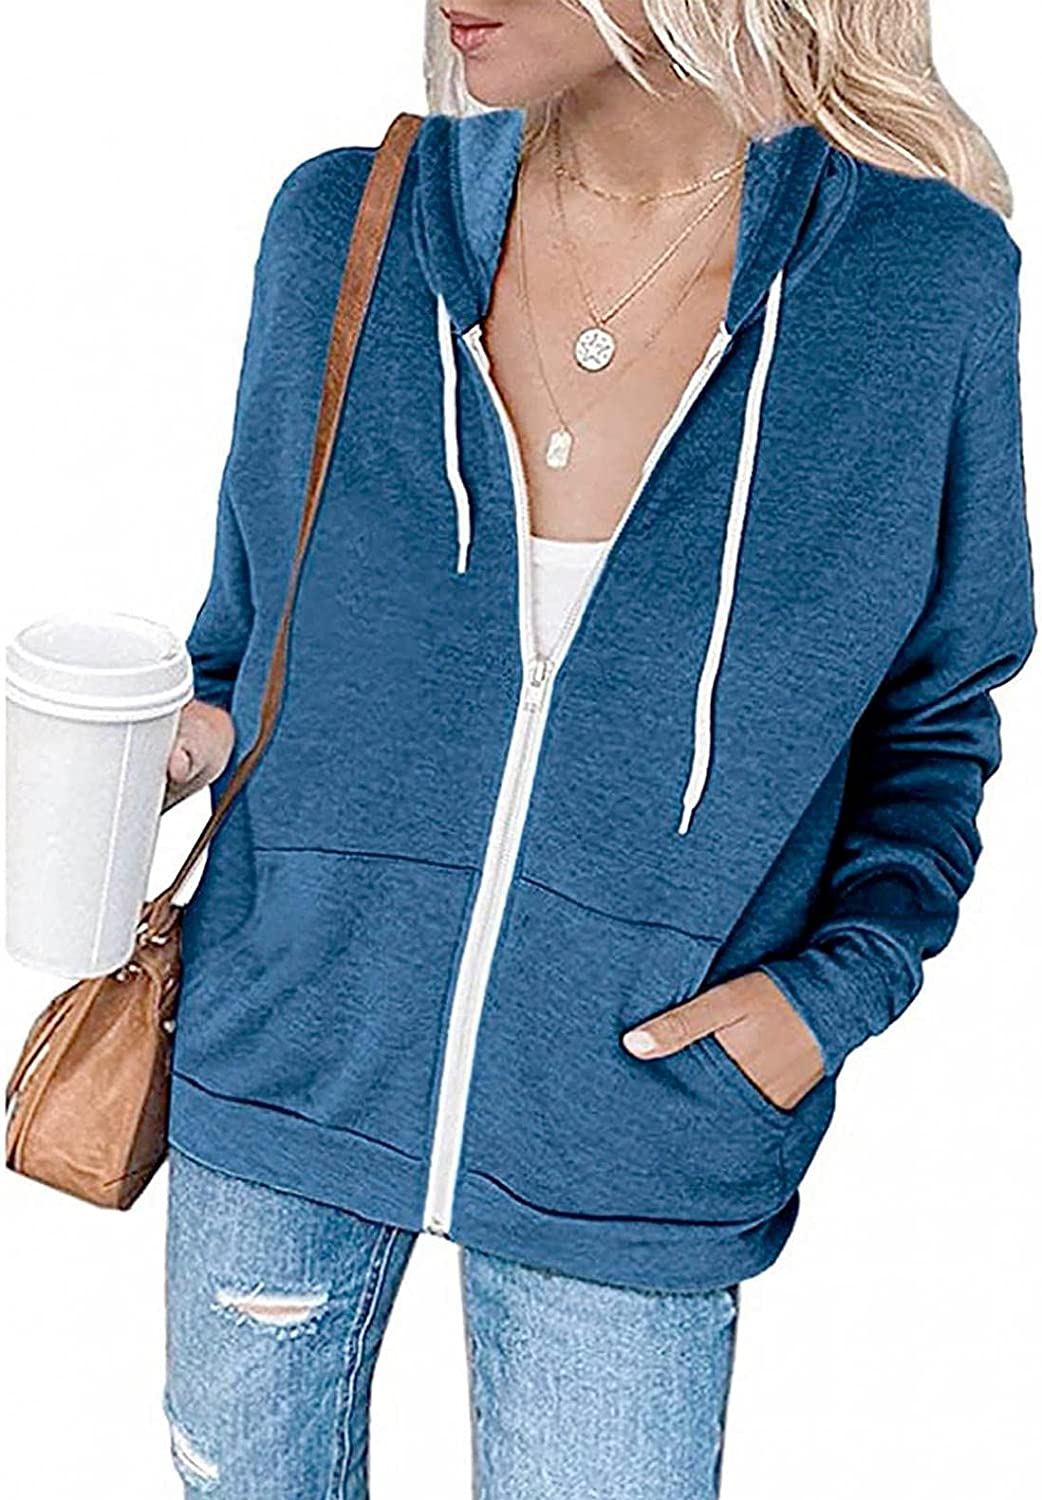 Nulairt Womens Hoodies,Women's Fashion Zip Up Sweatshirt Solid Color Drawstring Hooded Tops Lightweight Jackets